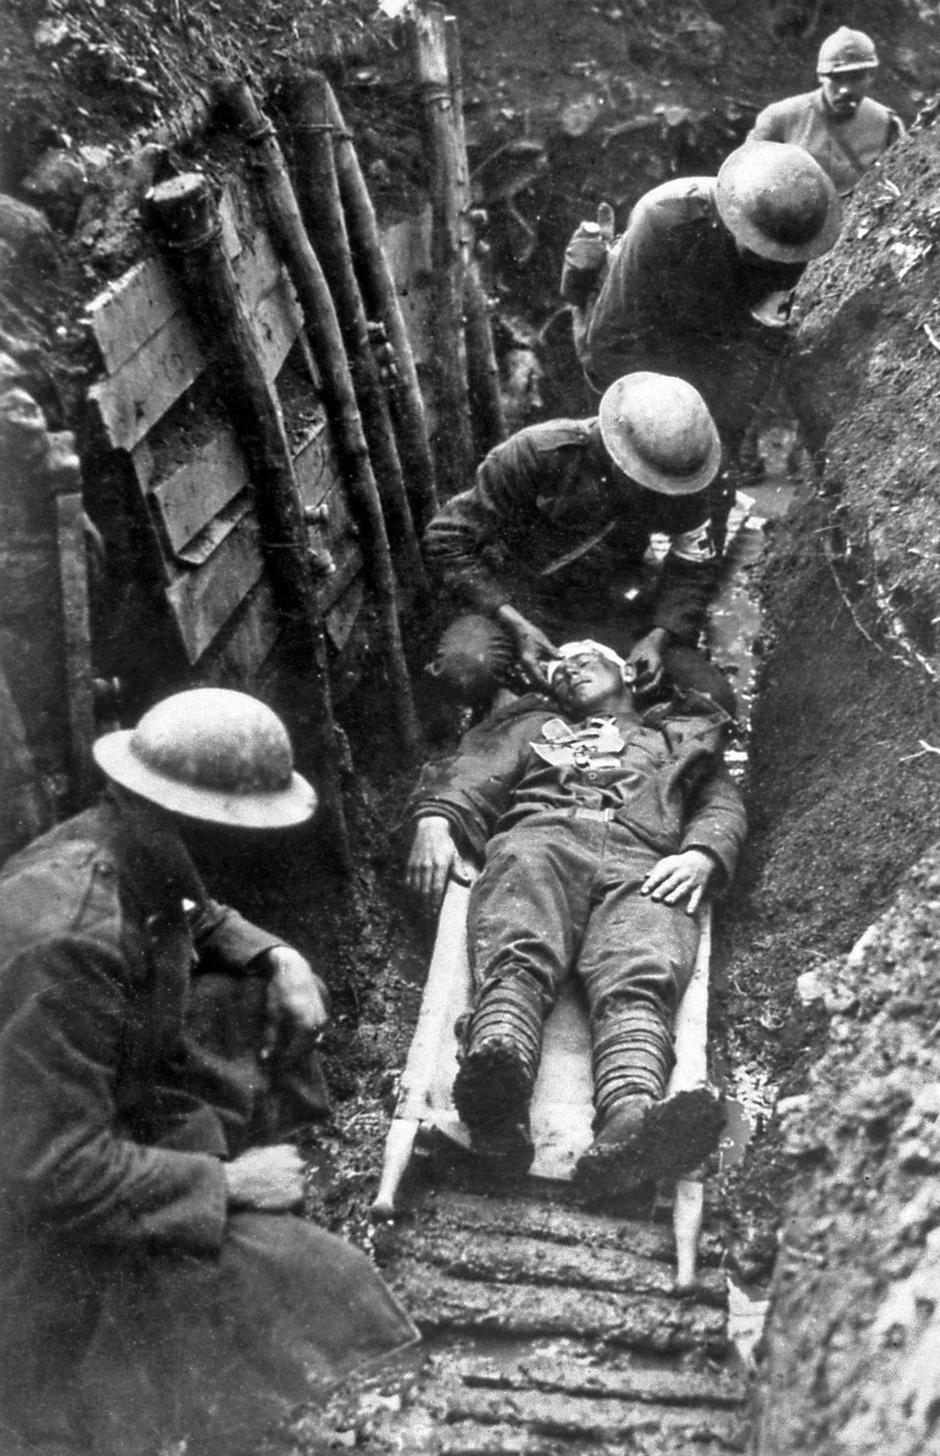 First aid in a trench | Autor: Profimedia